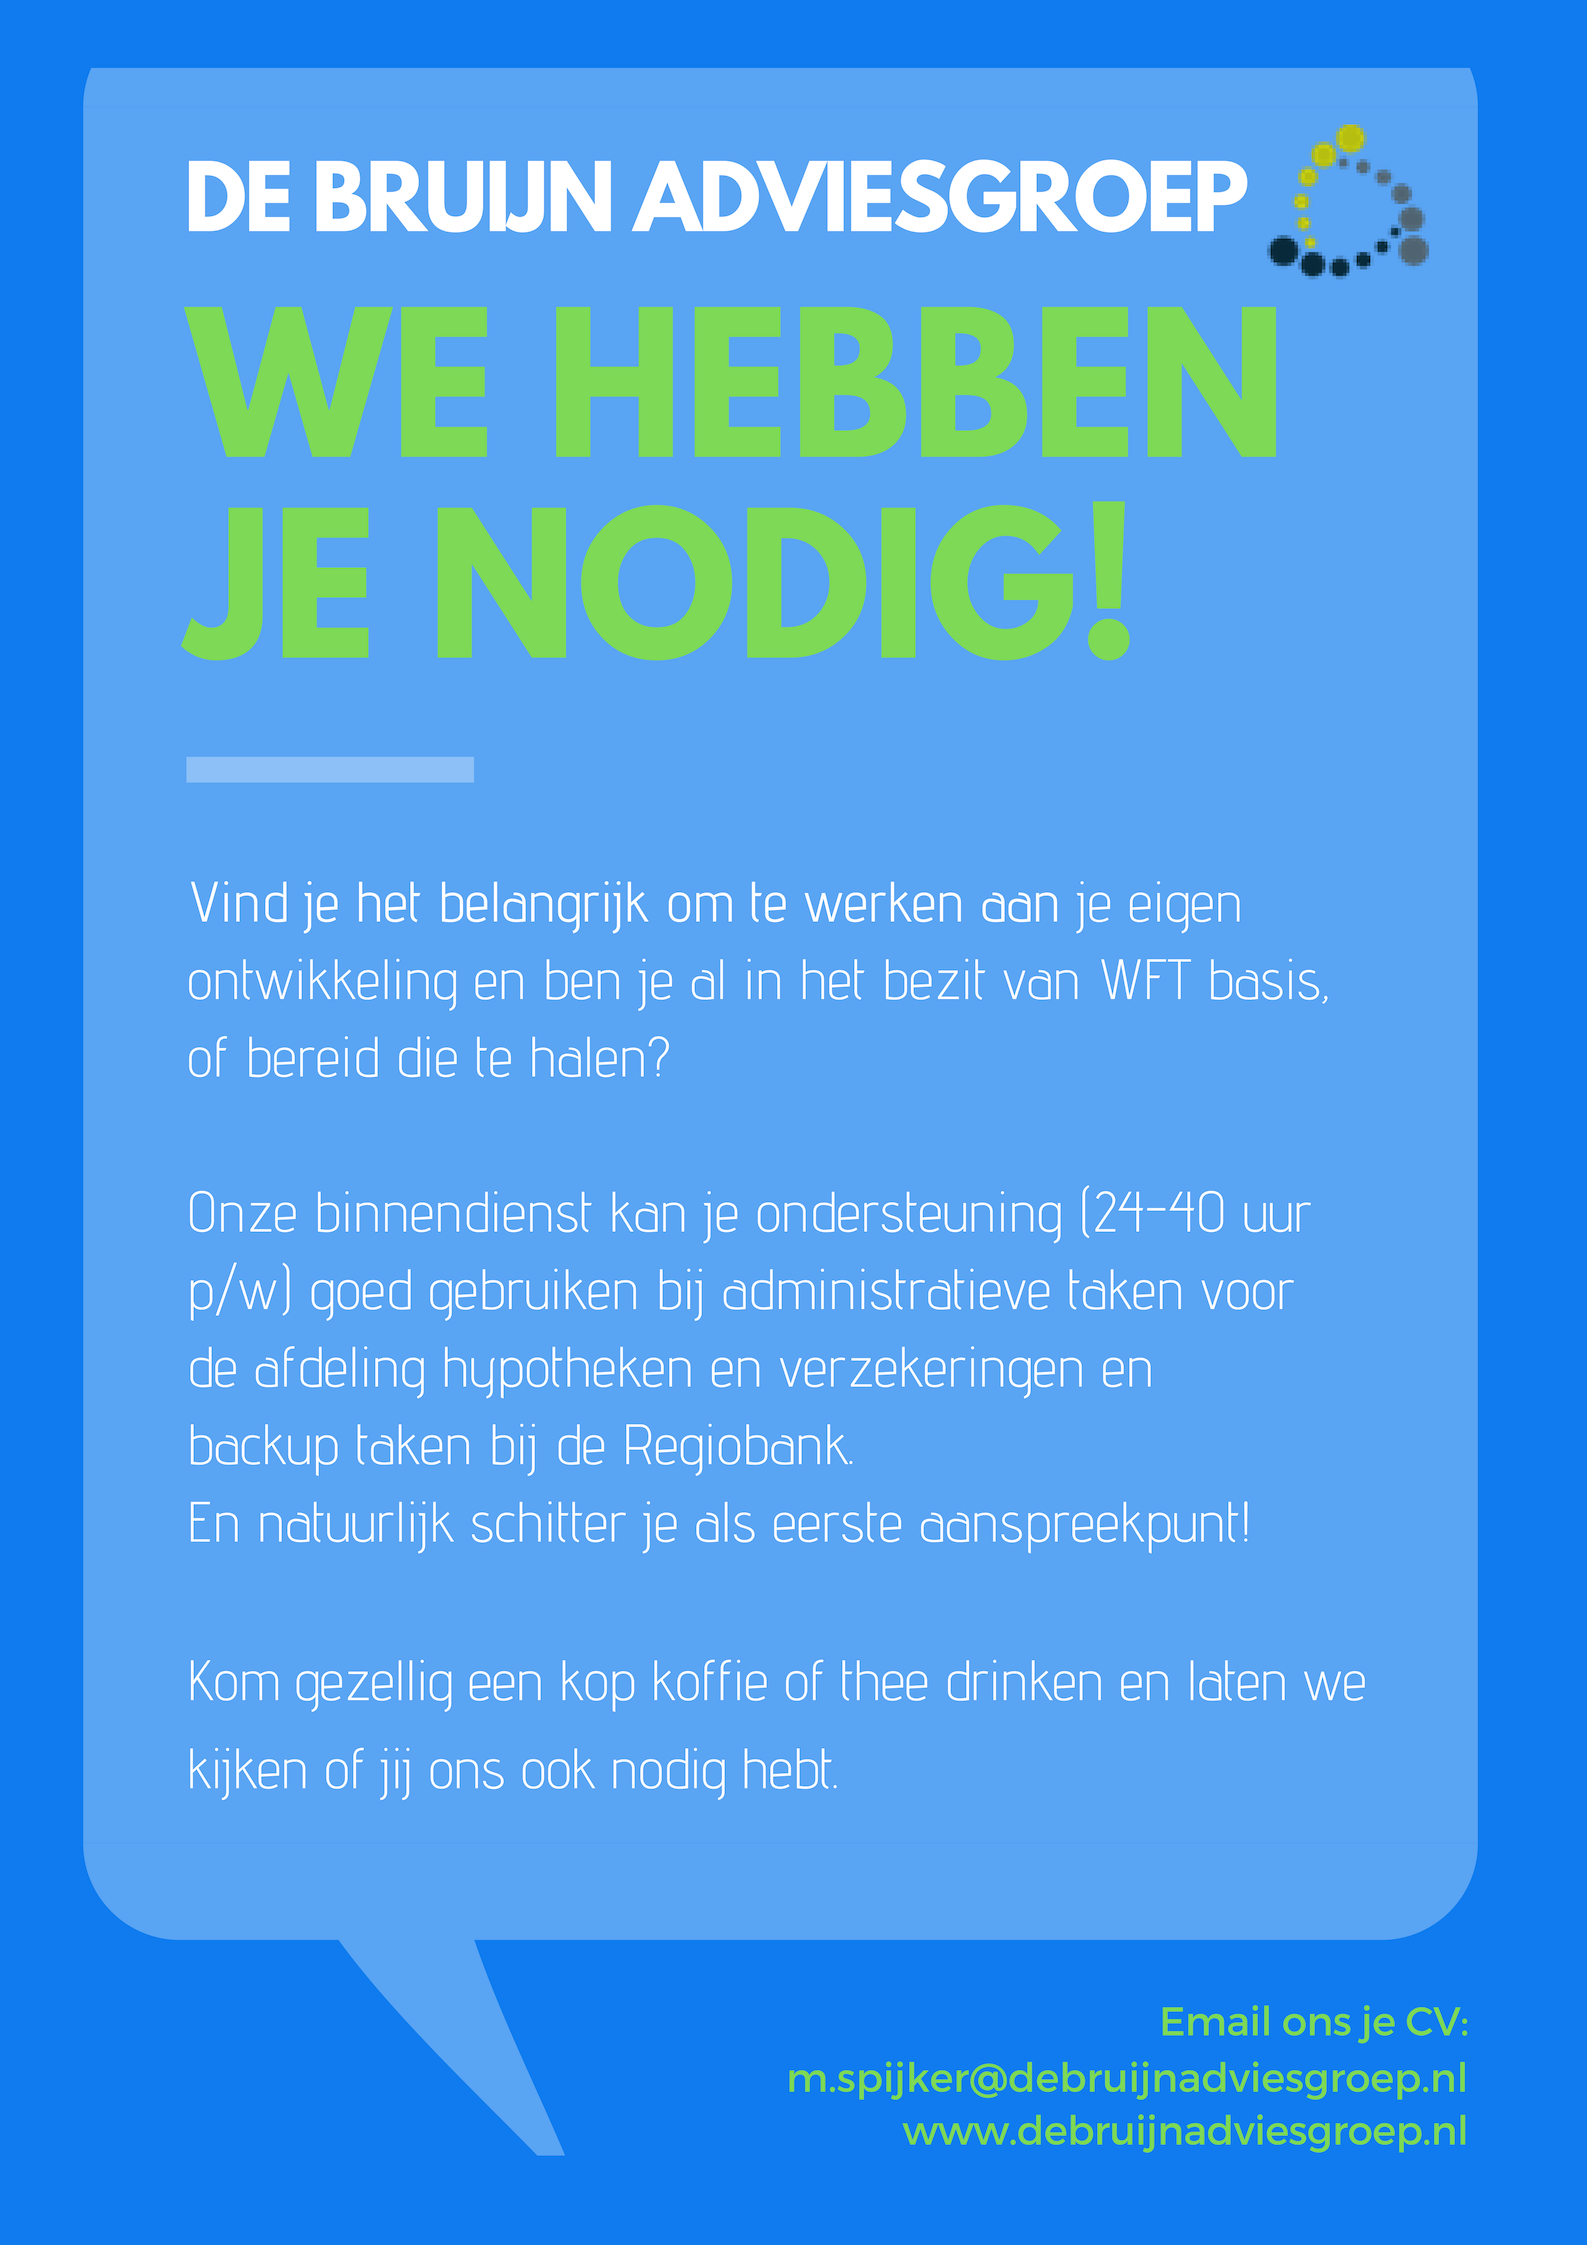 dba advertentie 24012019